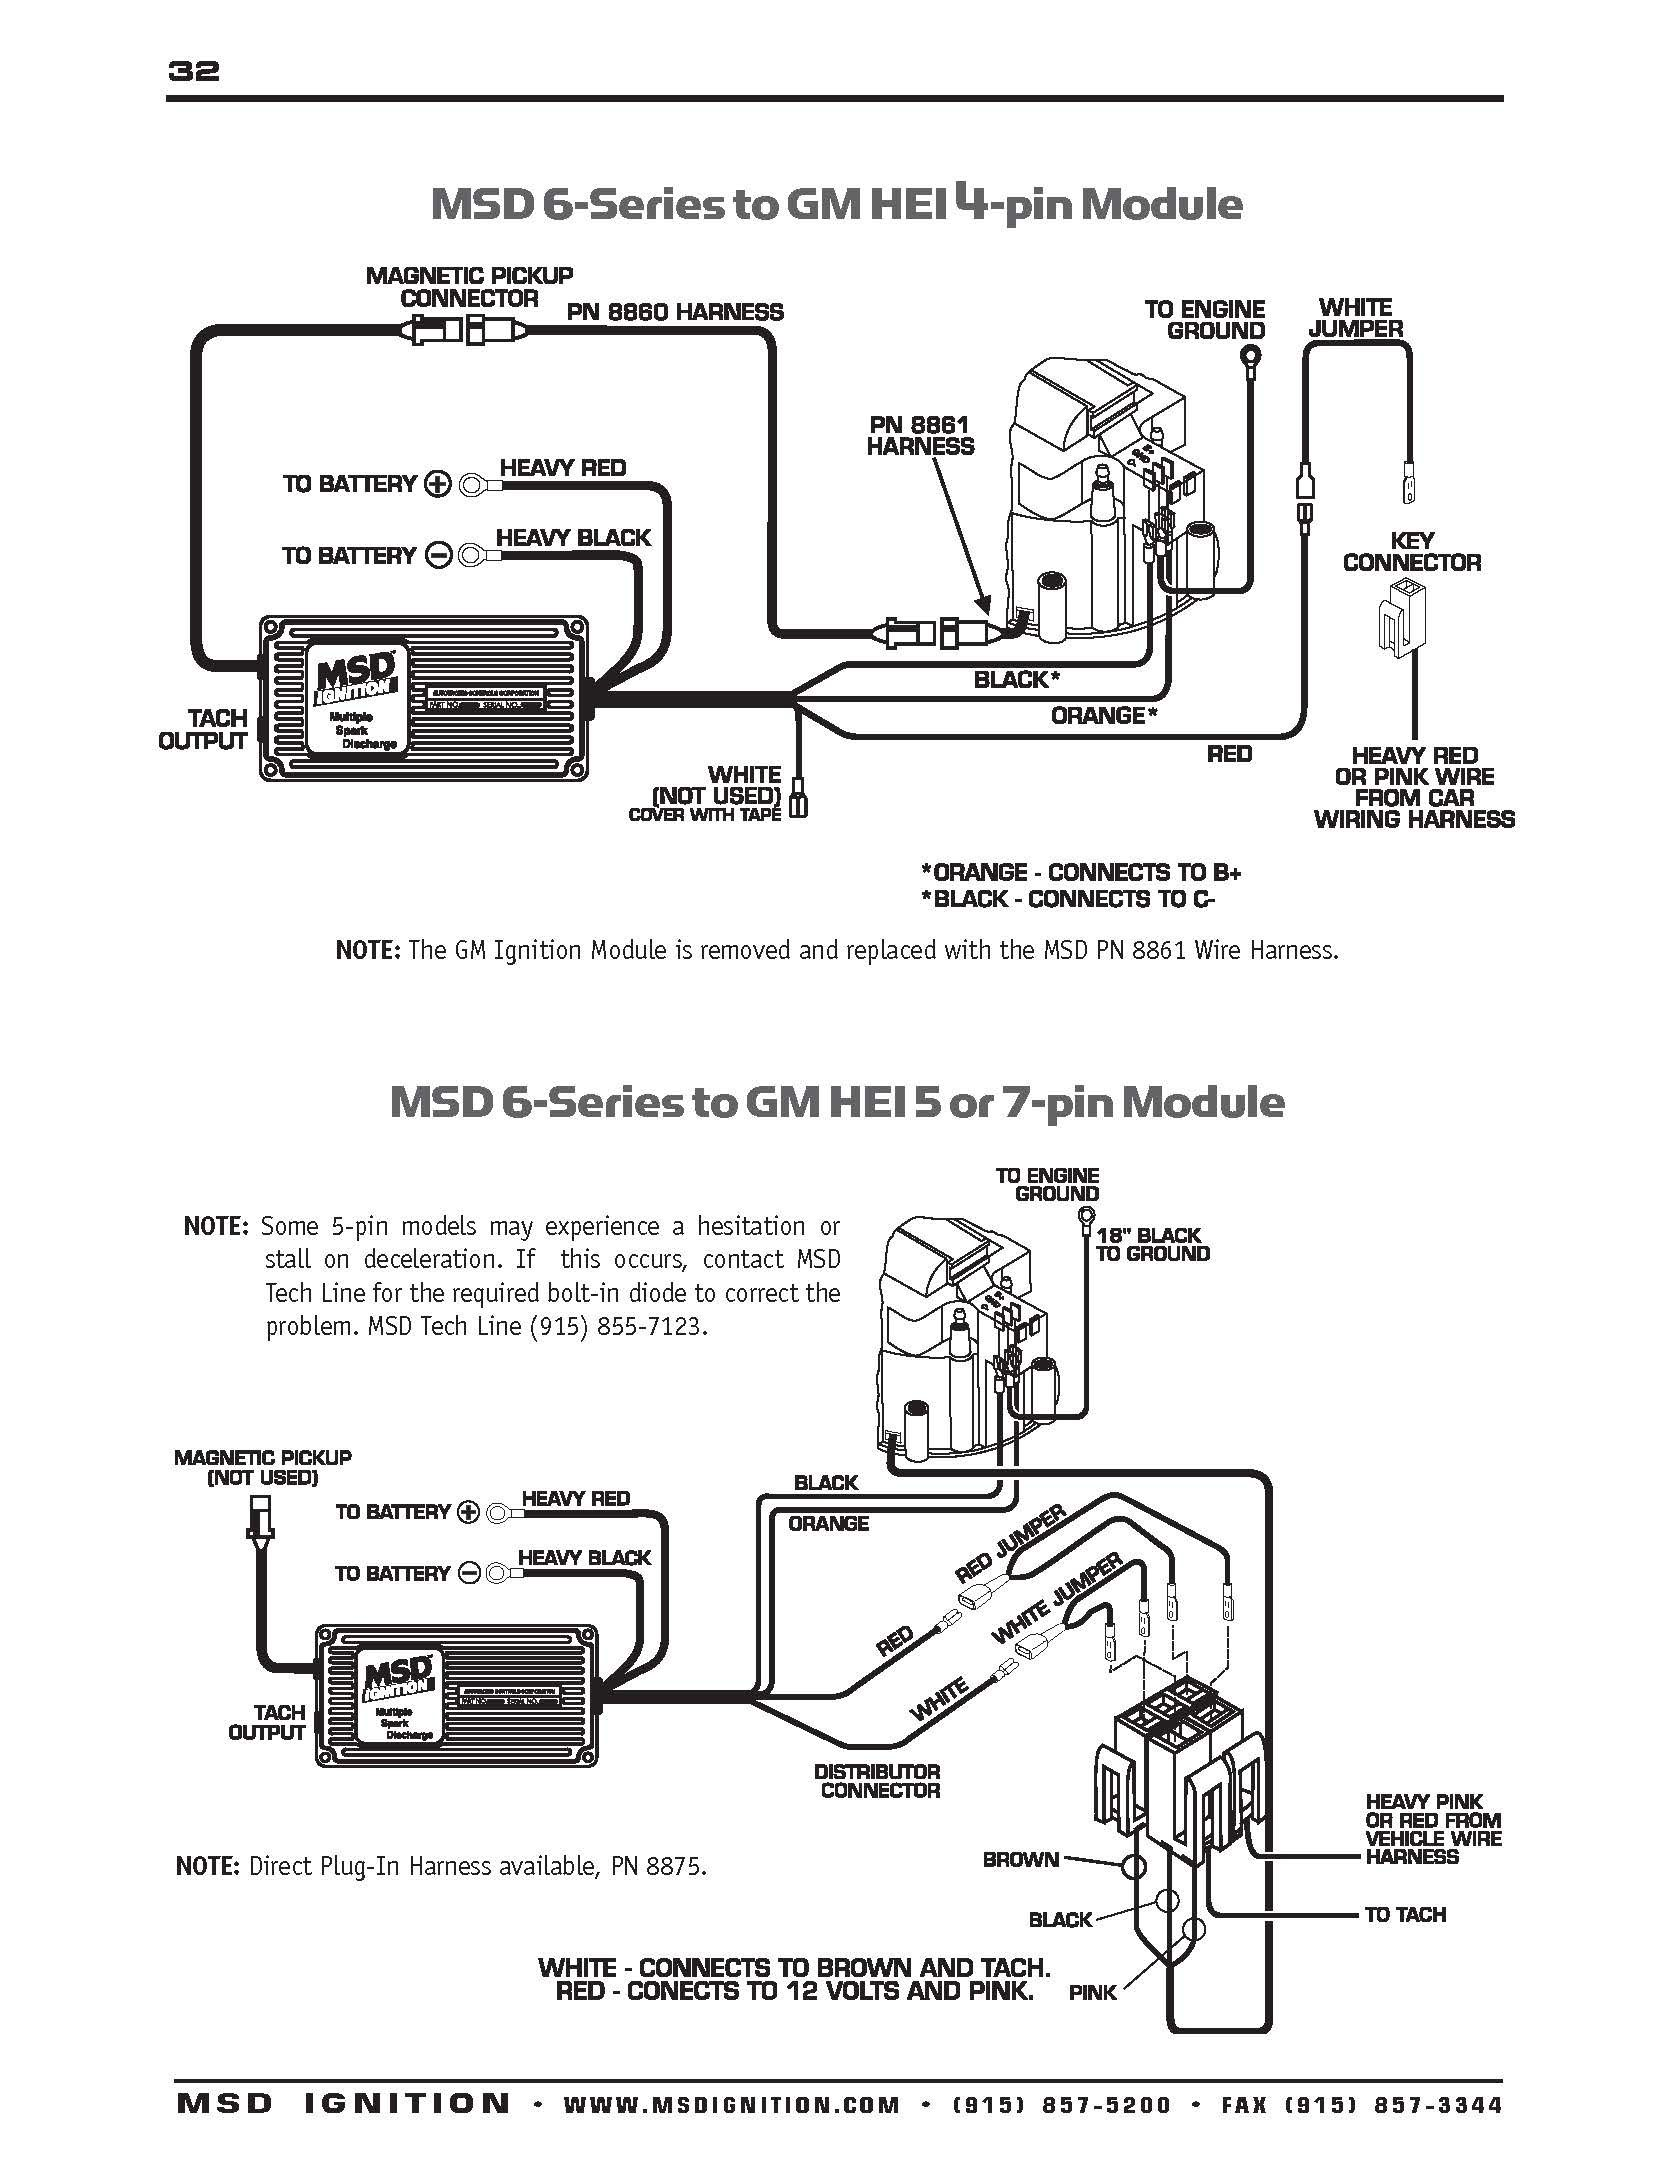 msd ignition wiring diagrams 1966 chevelle pinterest cars rh pinterest com msd ignition wiring diagram ford [ 1675 x 2175 Pixel ]